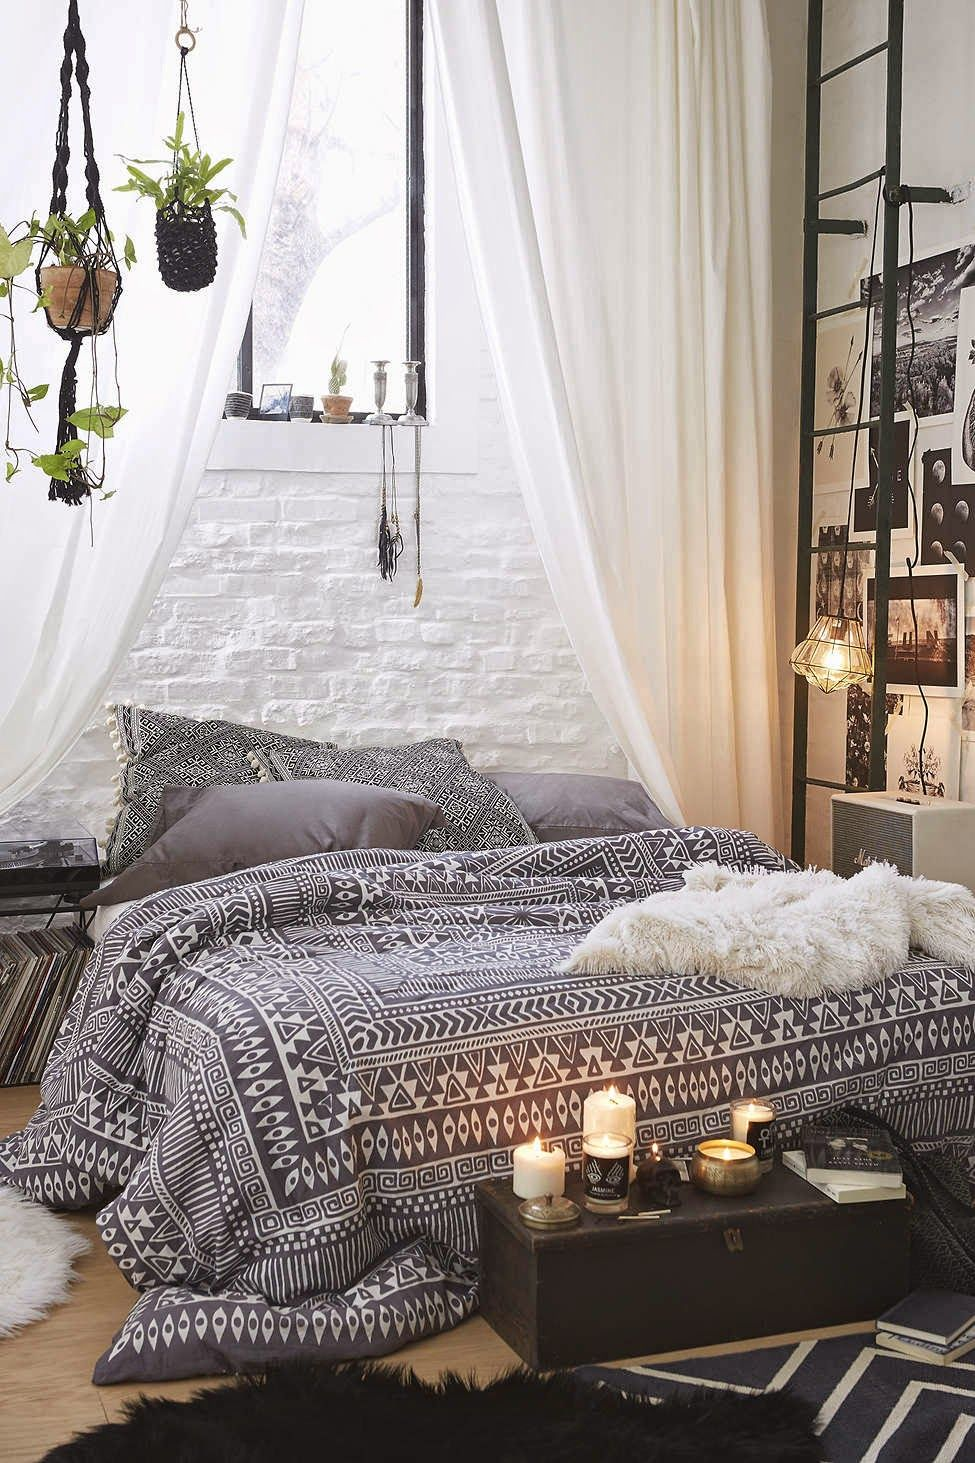 Bohemian magical bedroom (Daily Dream Decor) | Pinterest ...